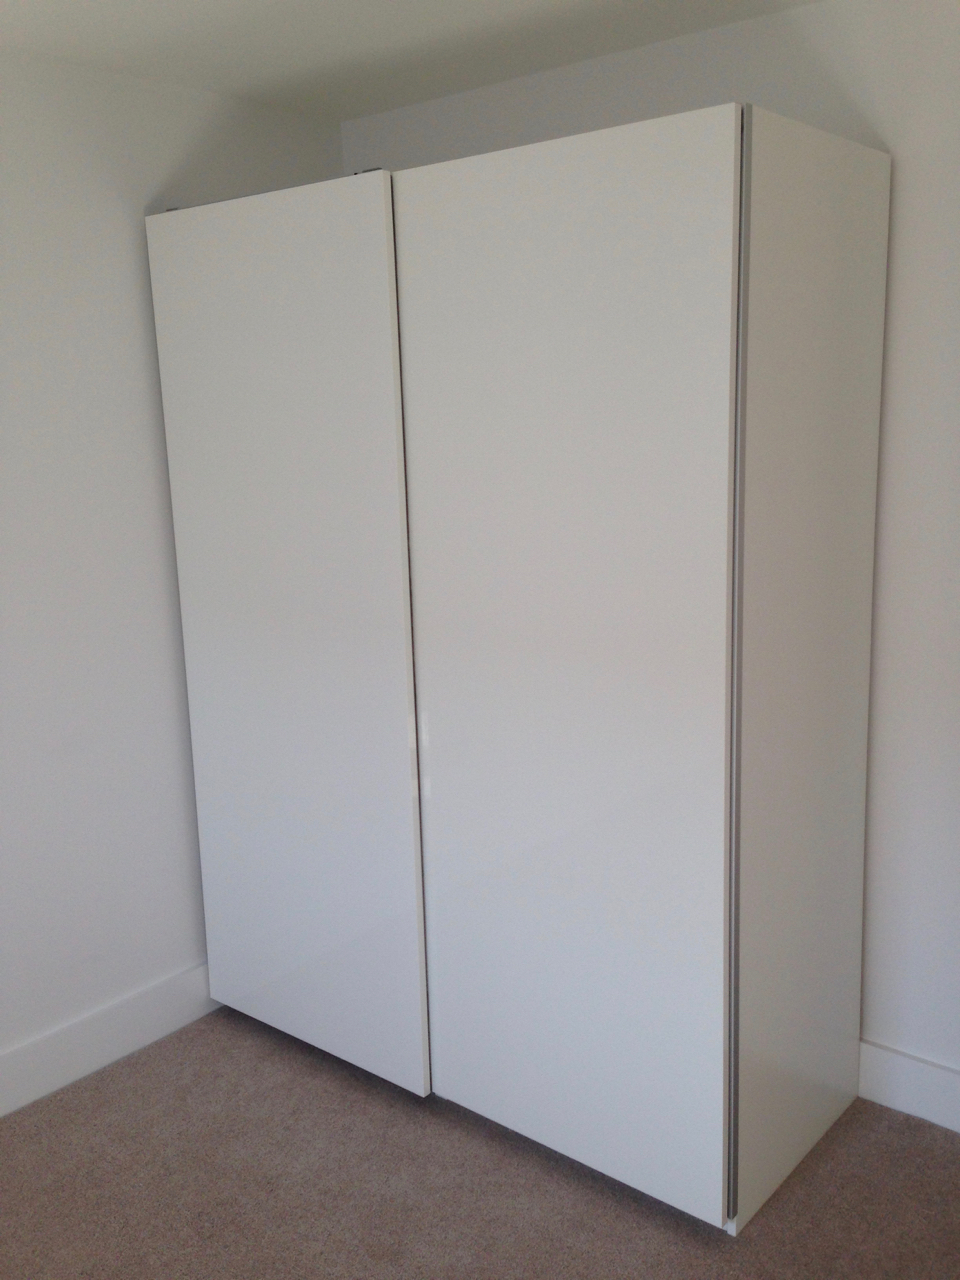 Ikea PAX sliding wardrobes Hasvik white doors assembled by www.norwichflatpack.co.uk